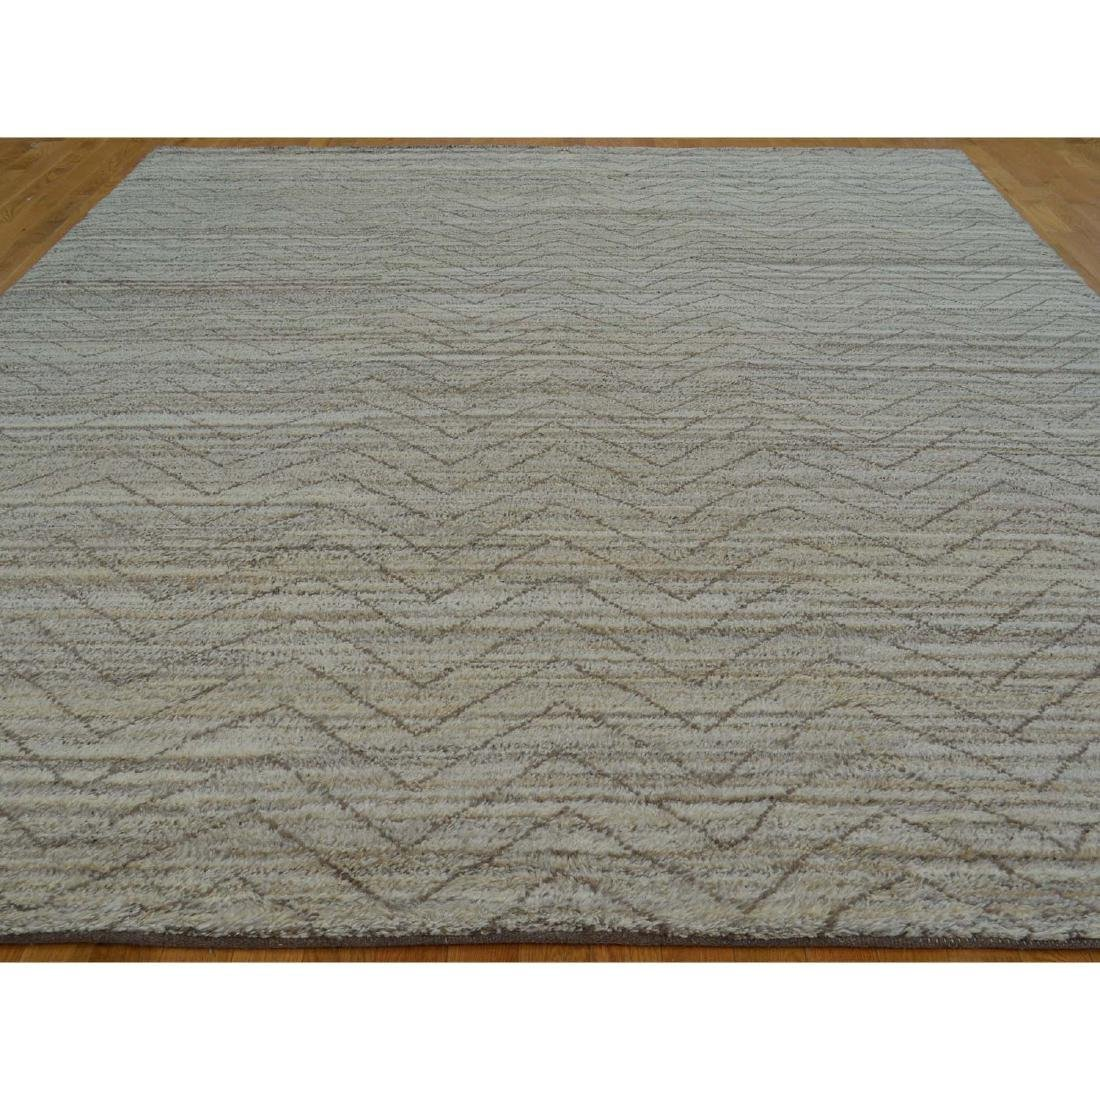 Wool Moroccan Berber Hand Knotted Rug 9.2x11.10 - 2